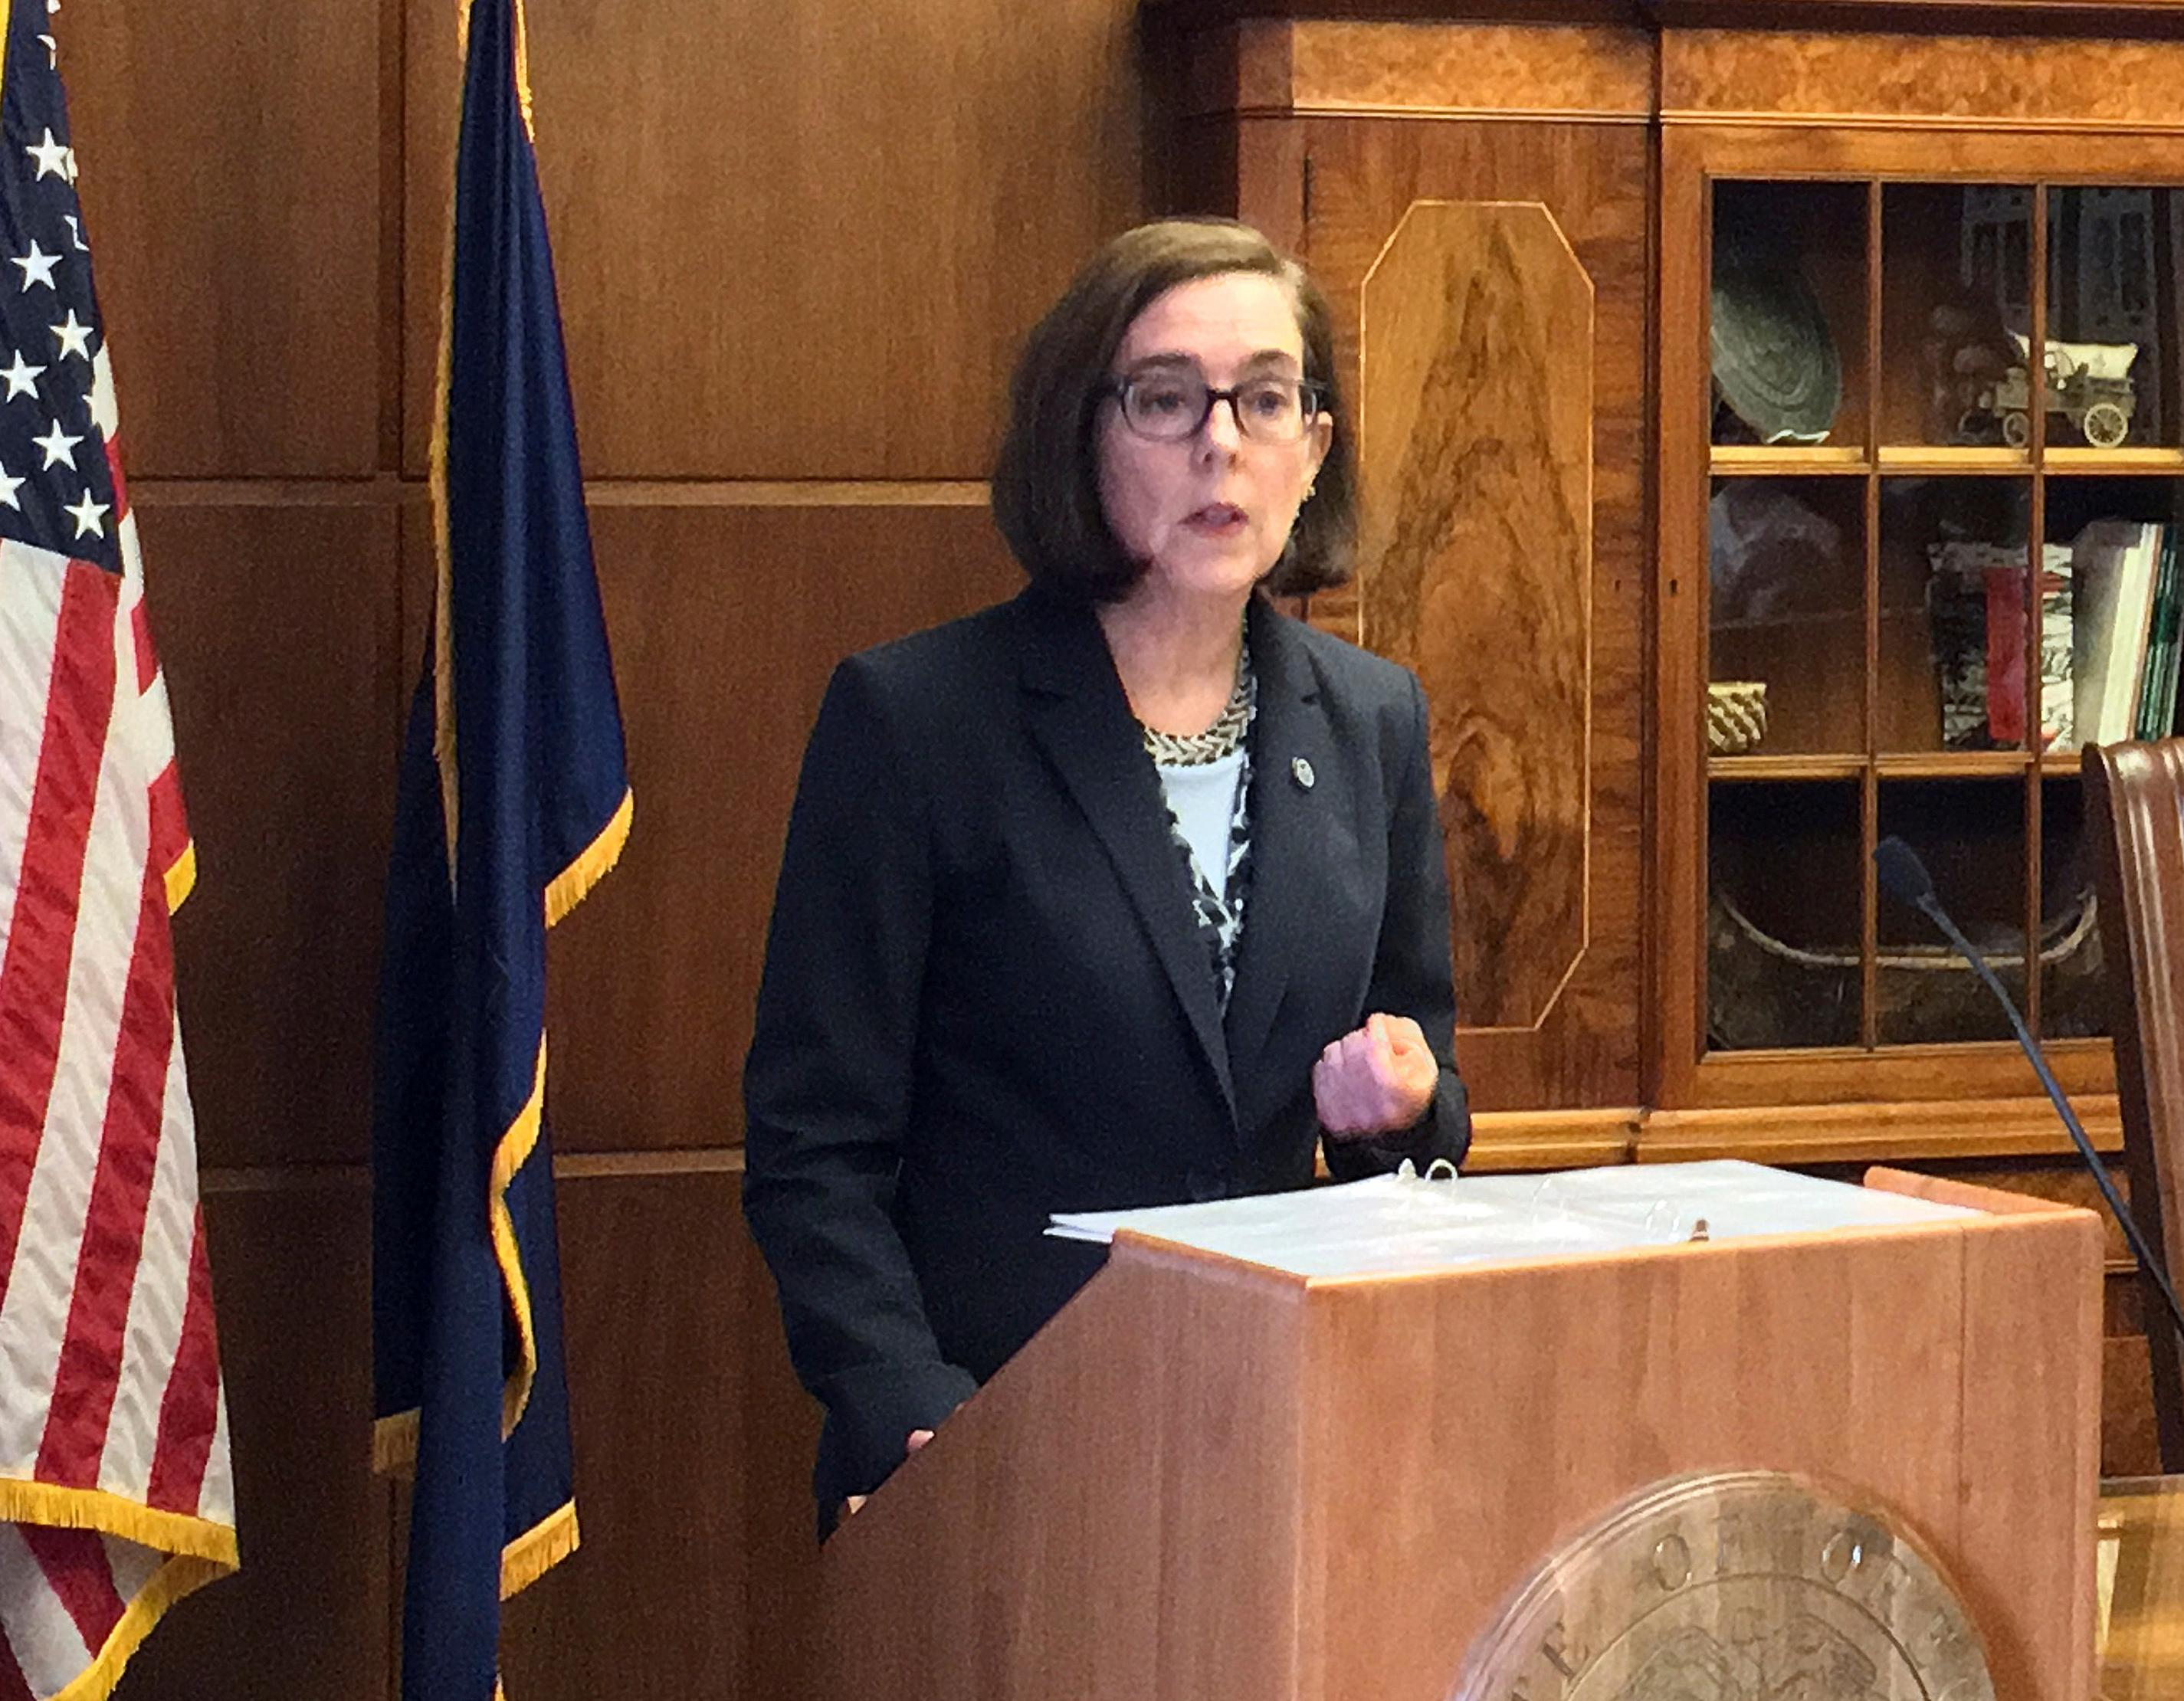 FILE - In this April 27, 2017, file photo, Oregon Gov. Kate Brown speaks in the Capitol ceremonial office in Salem, Ore. Oregon voters will choose candidates Tuesday, May 15, 2018, to compete in the state's general election, a primary contest that sees Democrats striving to consolidate power while Republicans hope to make gains. (AP Photo/Kristena Hansen, File)